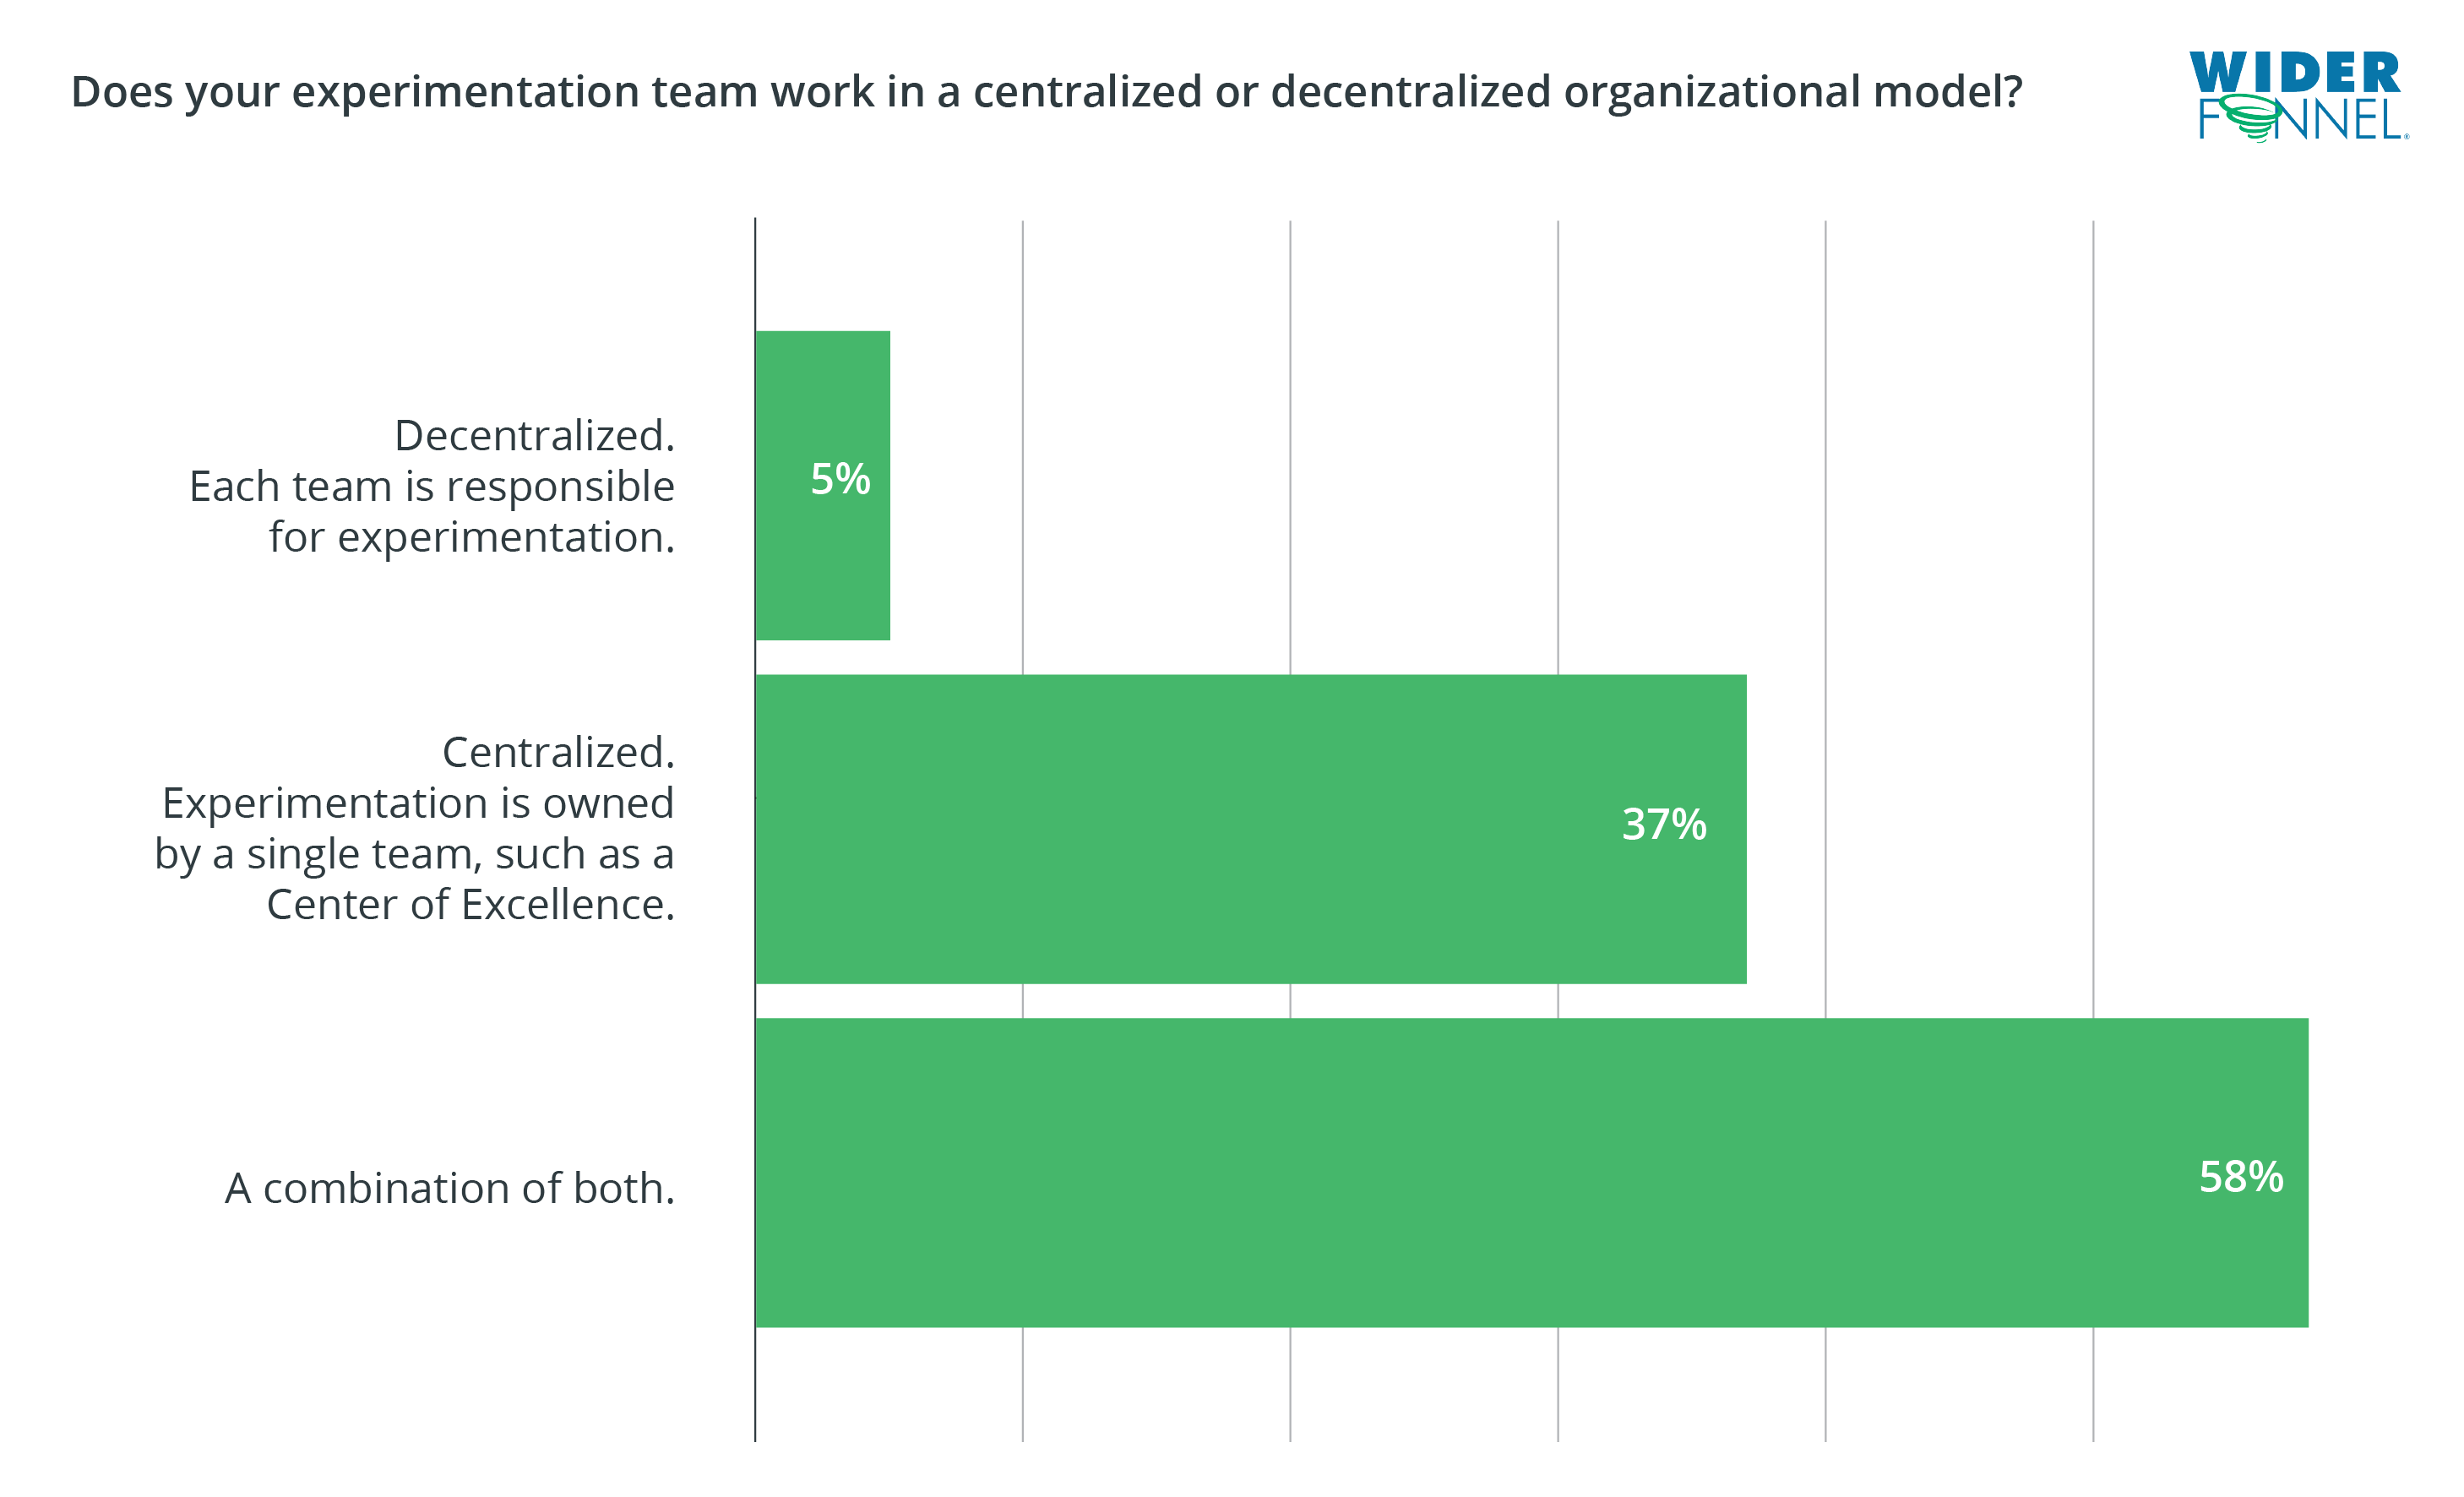 WiderFunnel State of Experimentation Maturity Organizational Model